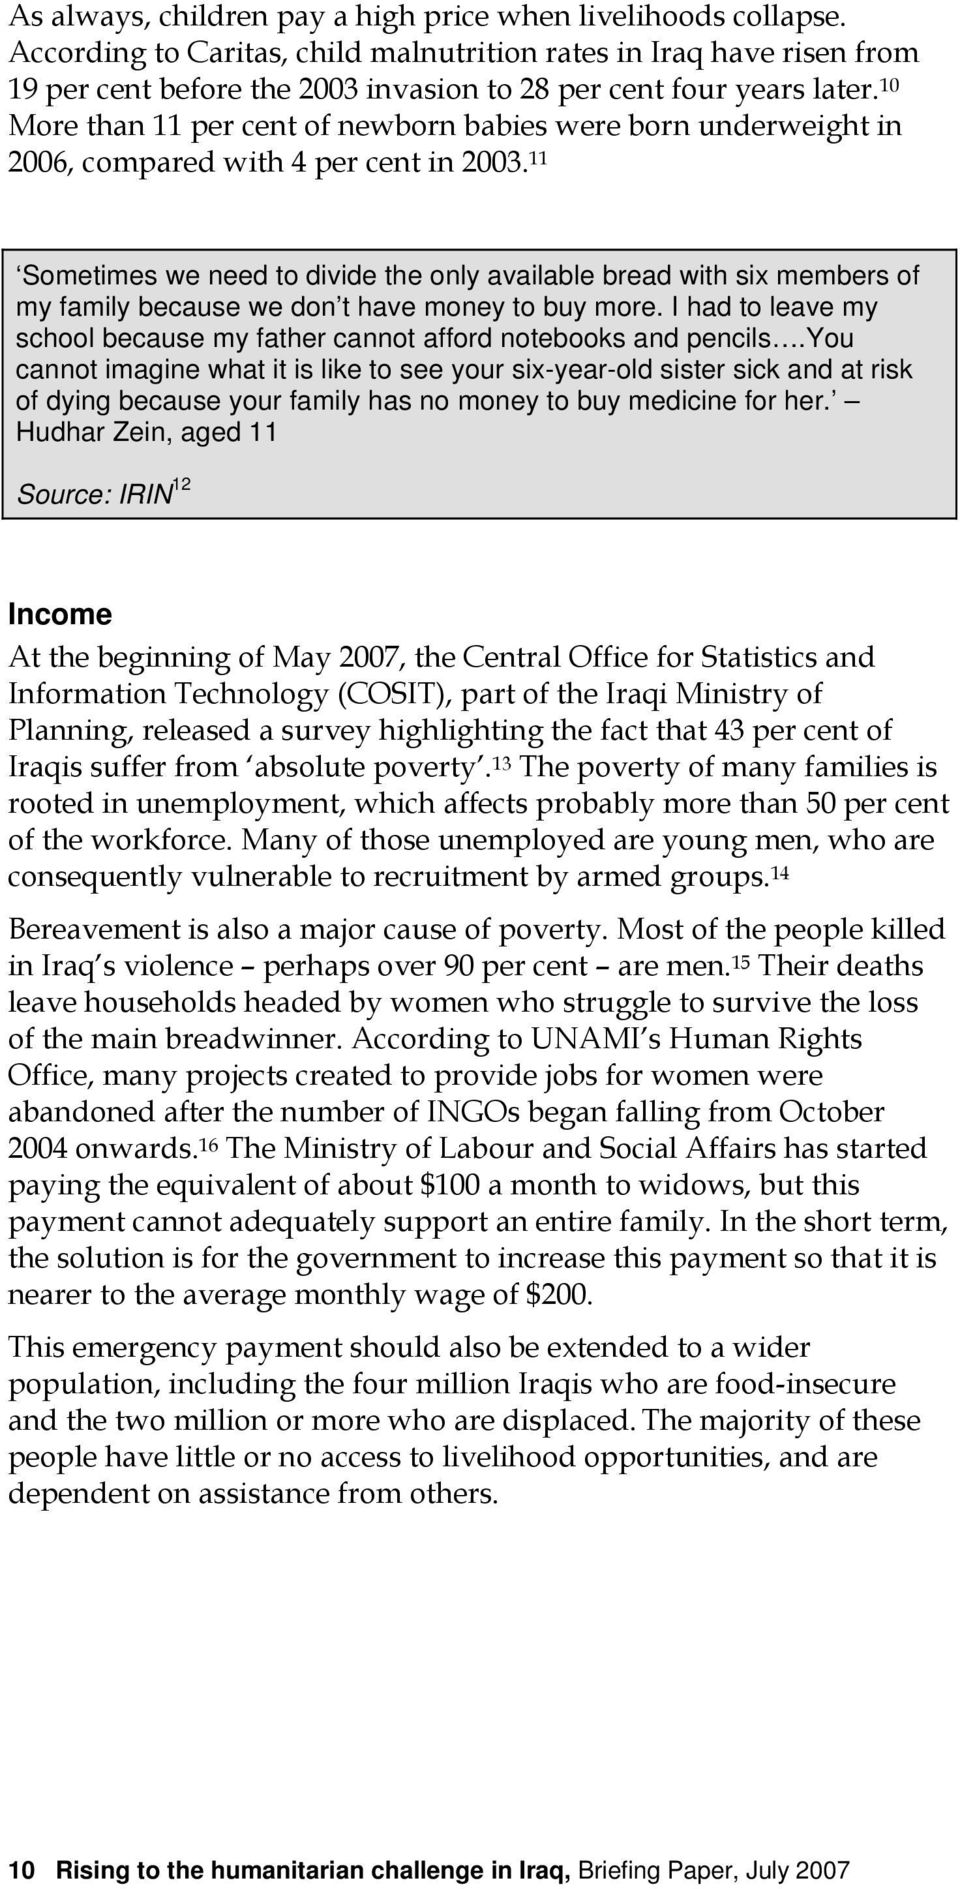 10 More than 11 per cent of newborn babies were born underweight in 2006, compared with 4 per cent in 2003.